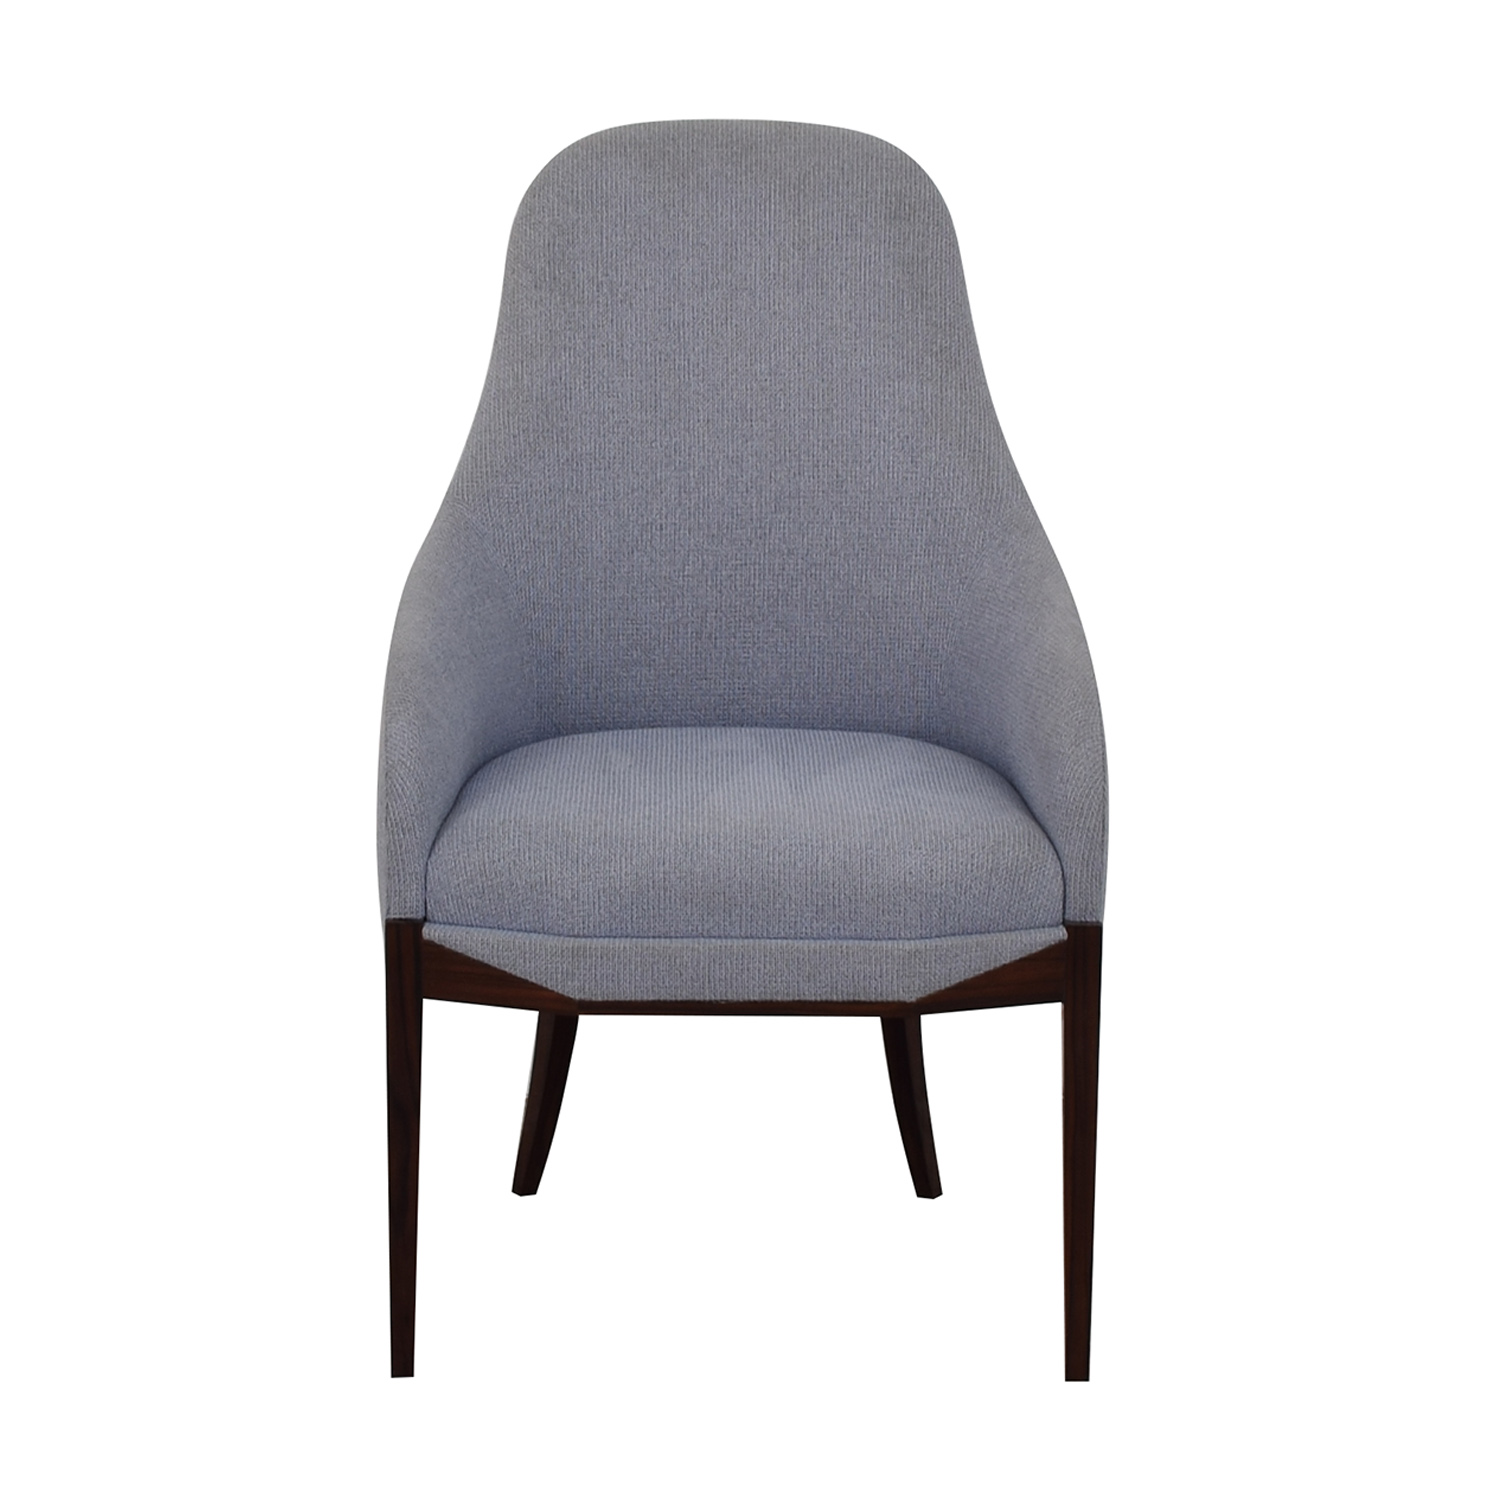 Furniture Masters Furniture Masters Light Blue Upholstered Chair sky blue